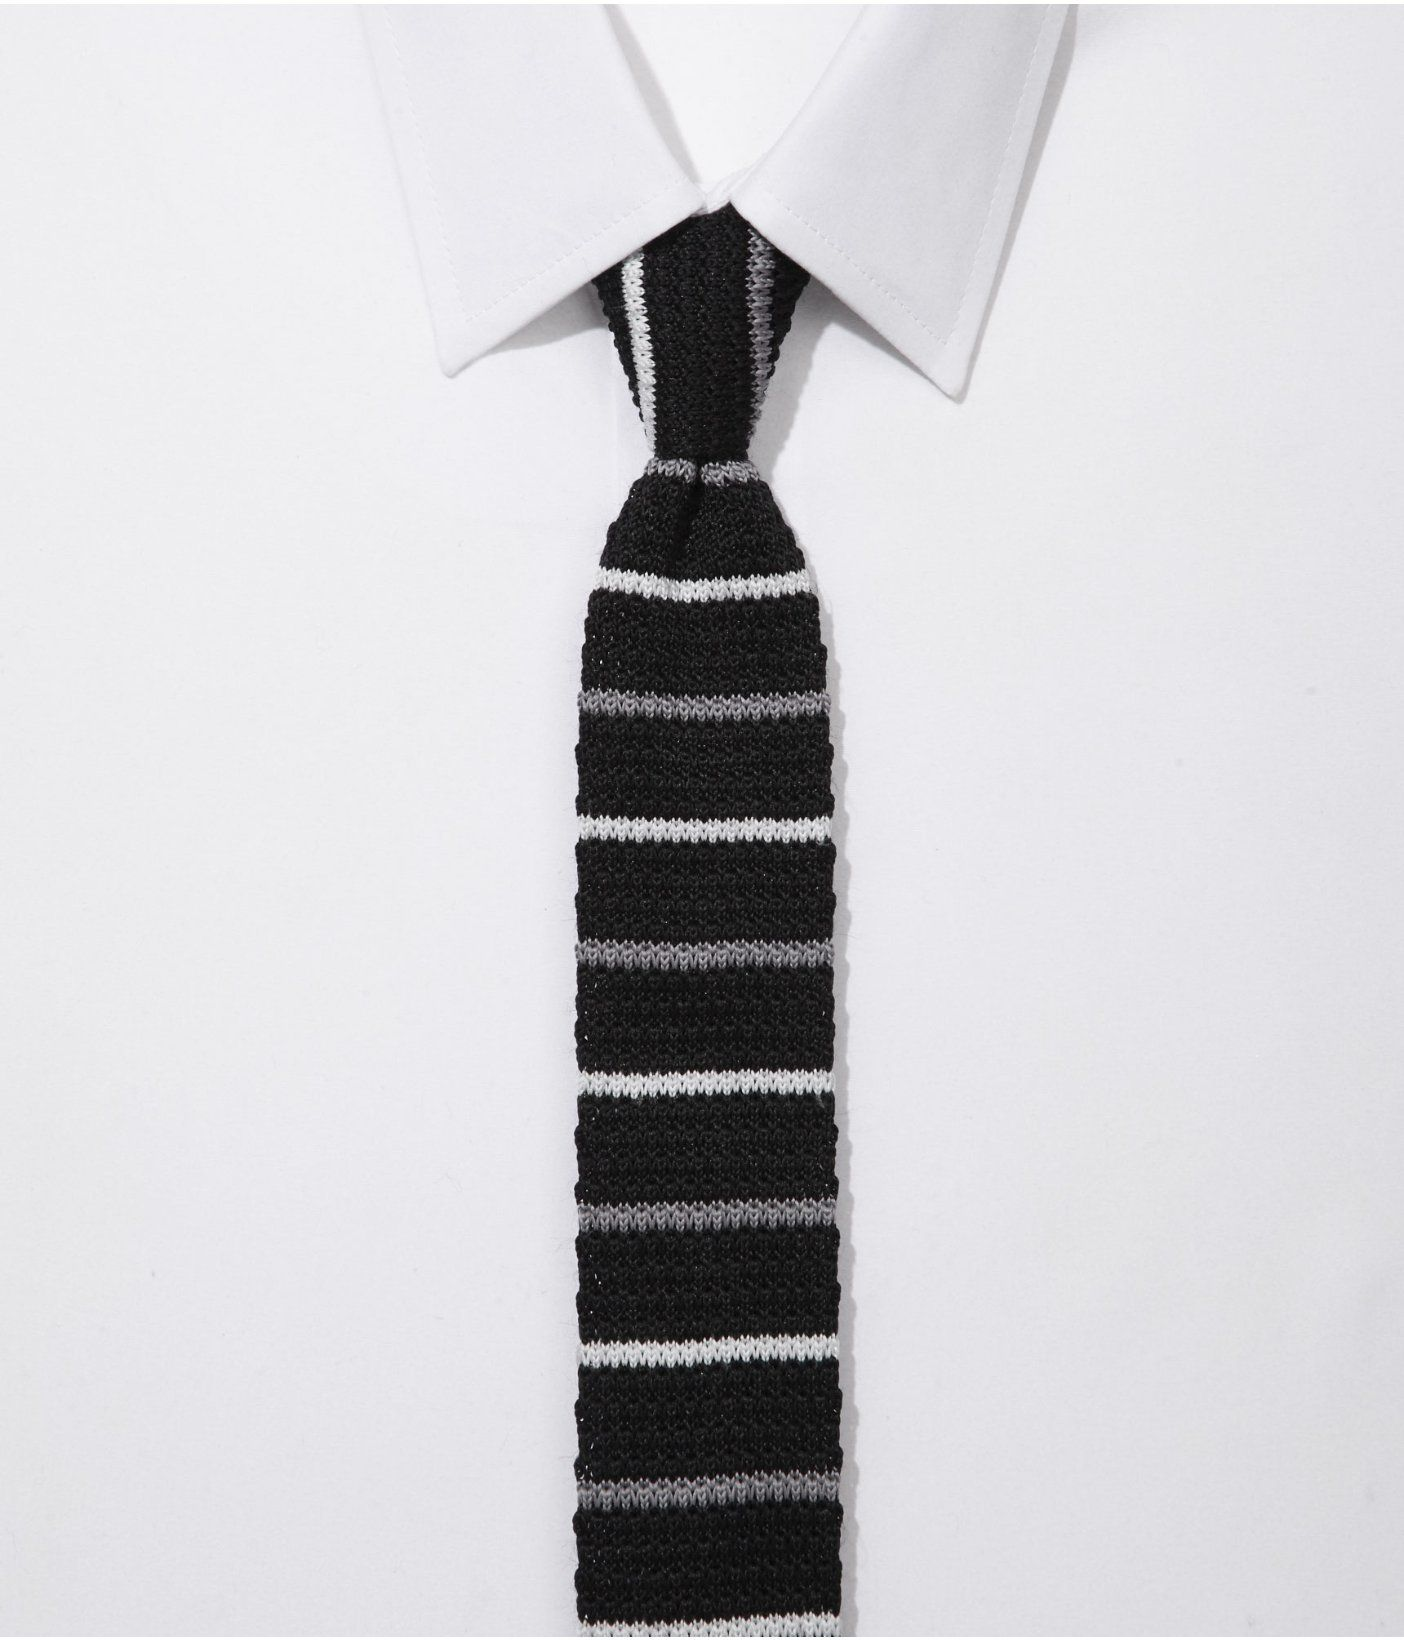 SKINNY KNIT TIE - HORIZONTAL STRIPE | Express | Things : ties, socks ...